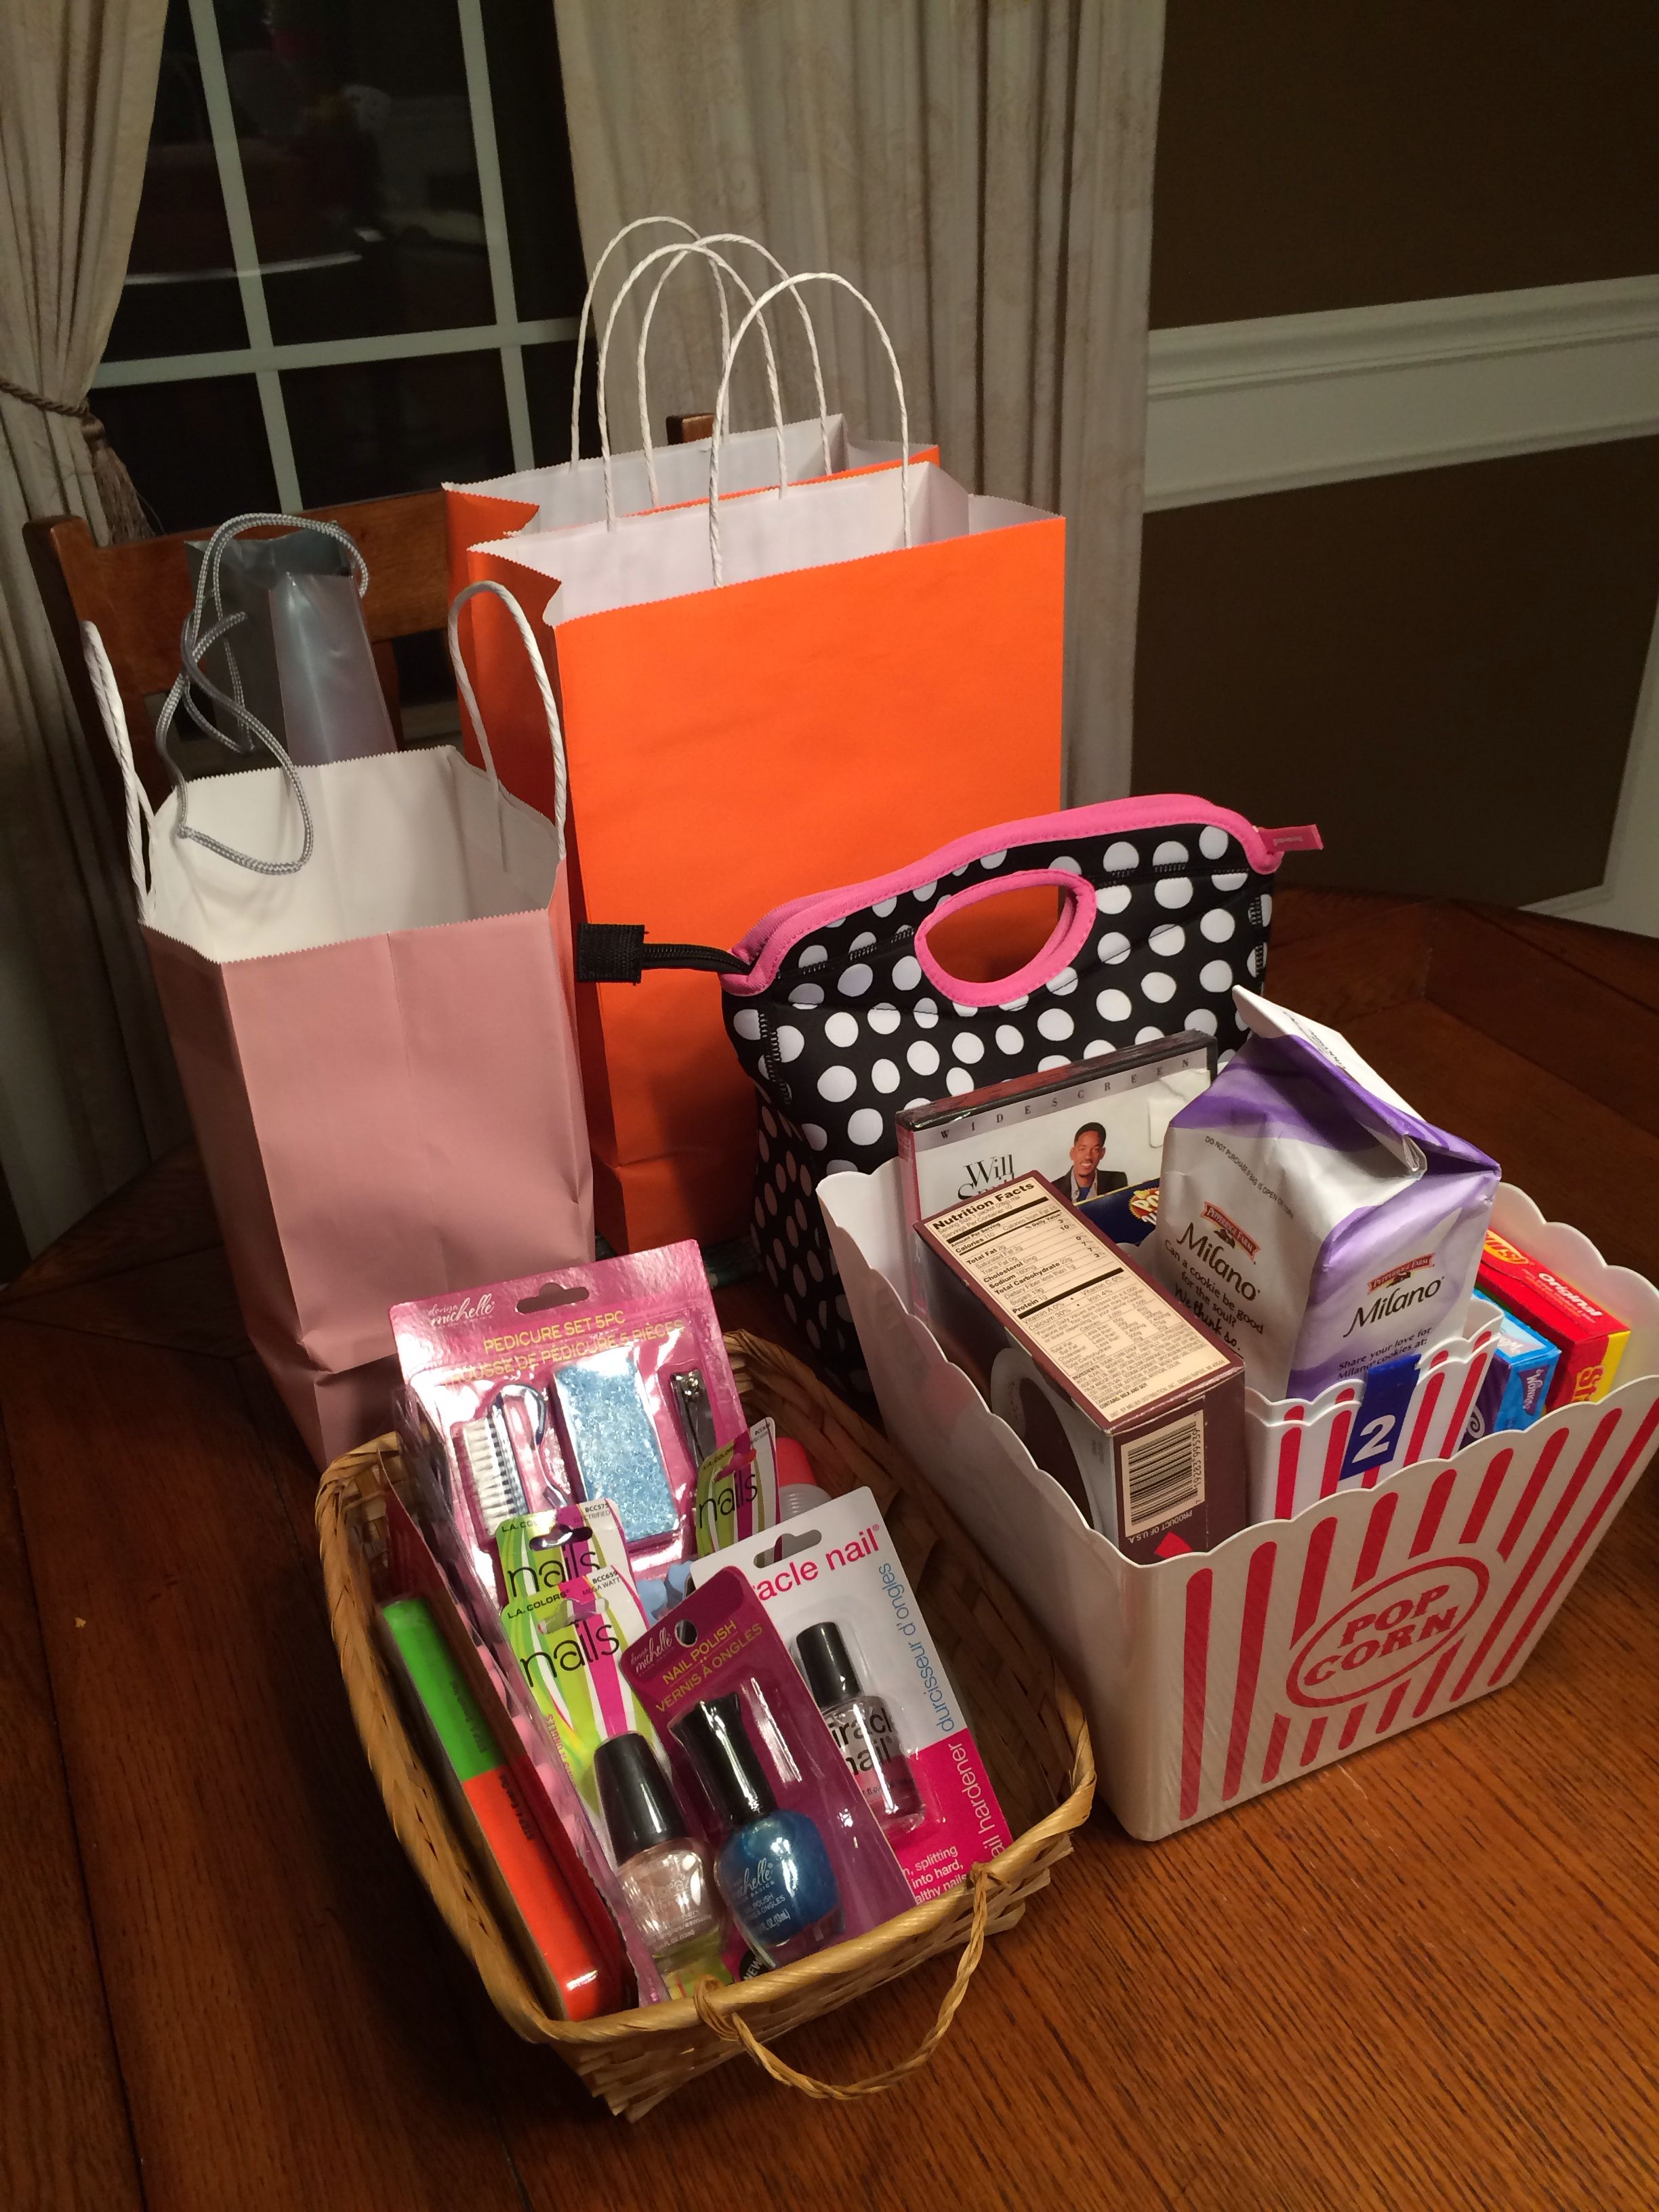 Pin By Angela Wright On Bridal Shower Bachelorette Party Ideas Bridal Shower Prizes Baby Shower Game Prizes Shower Prizes